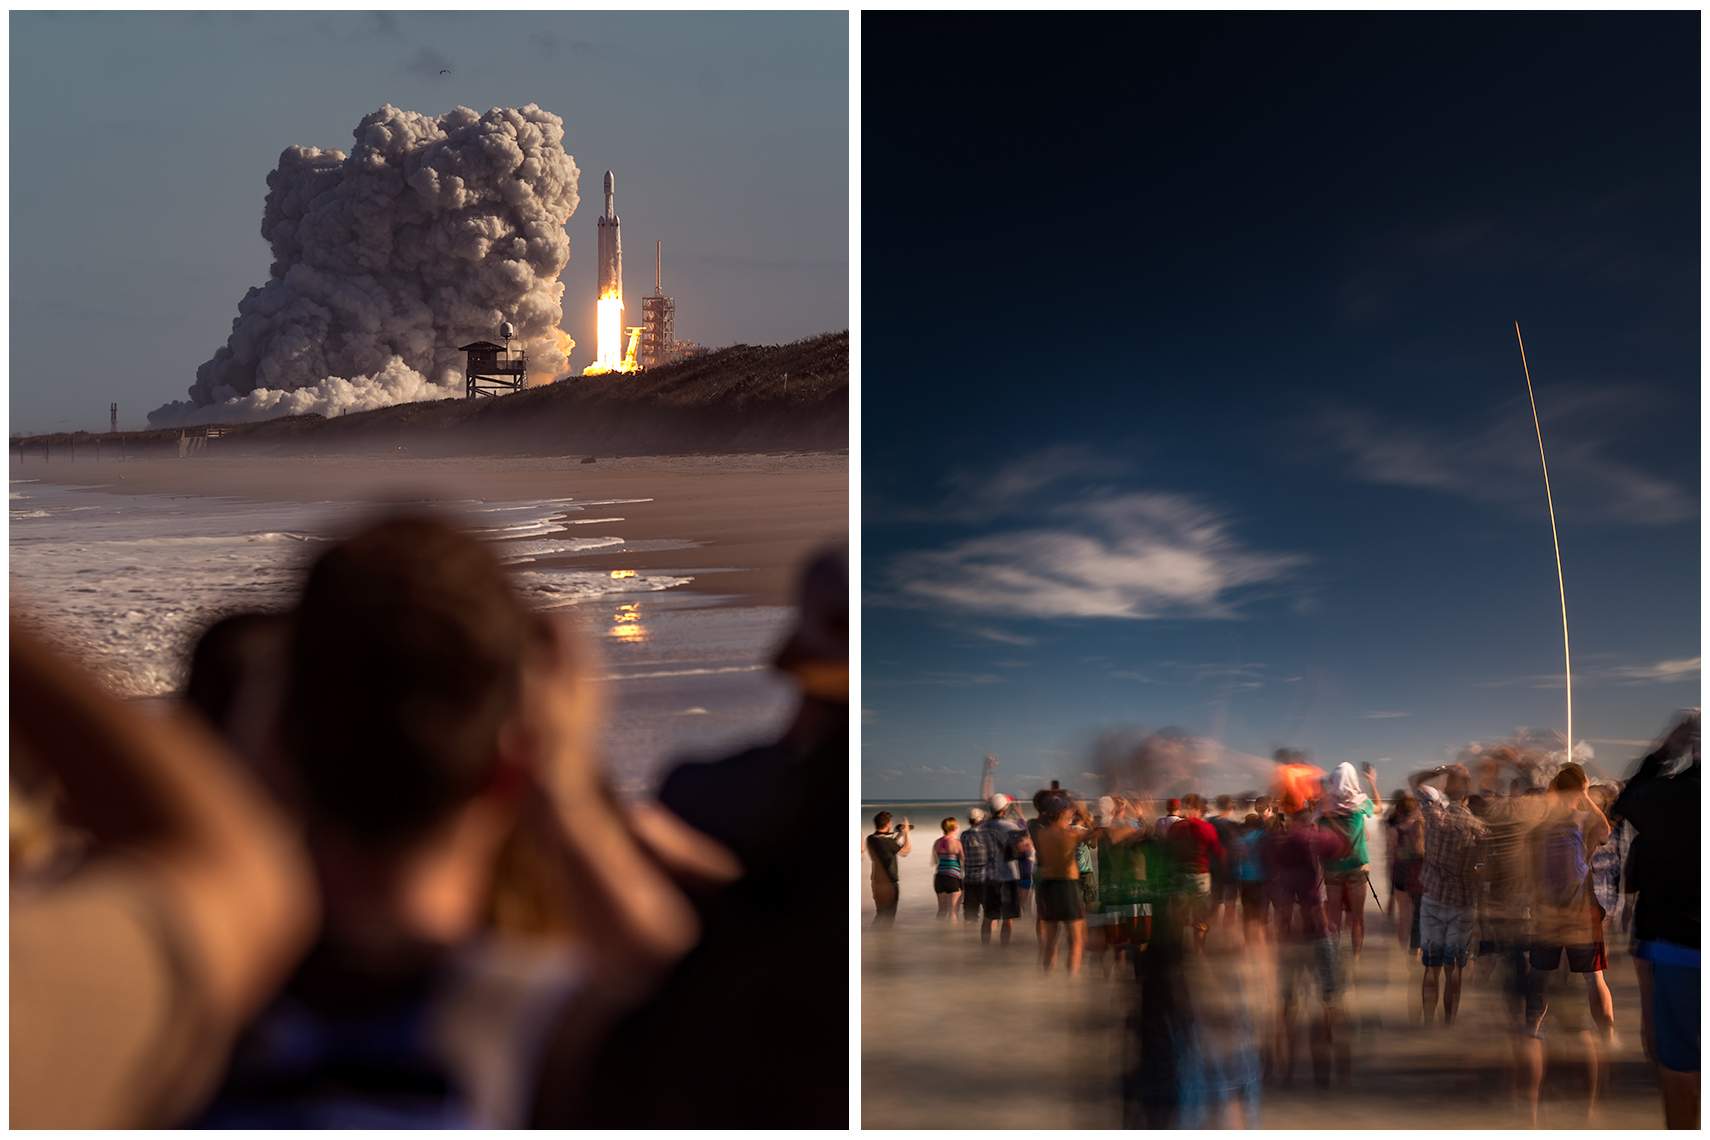 spacex-falcon-heavy-launch-playalinda-beach